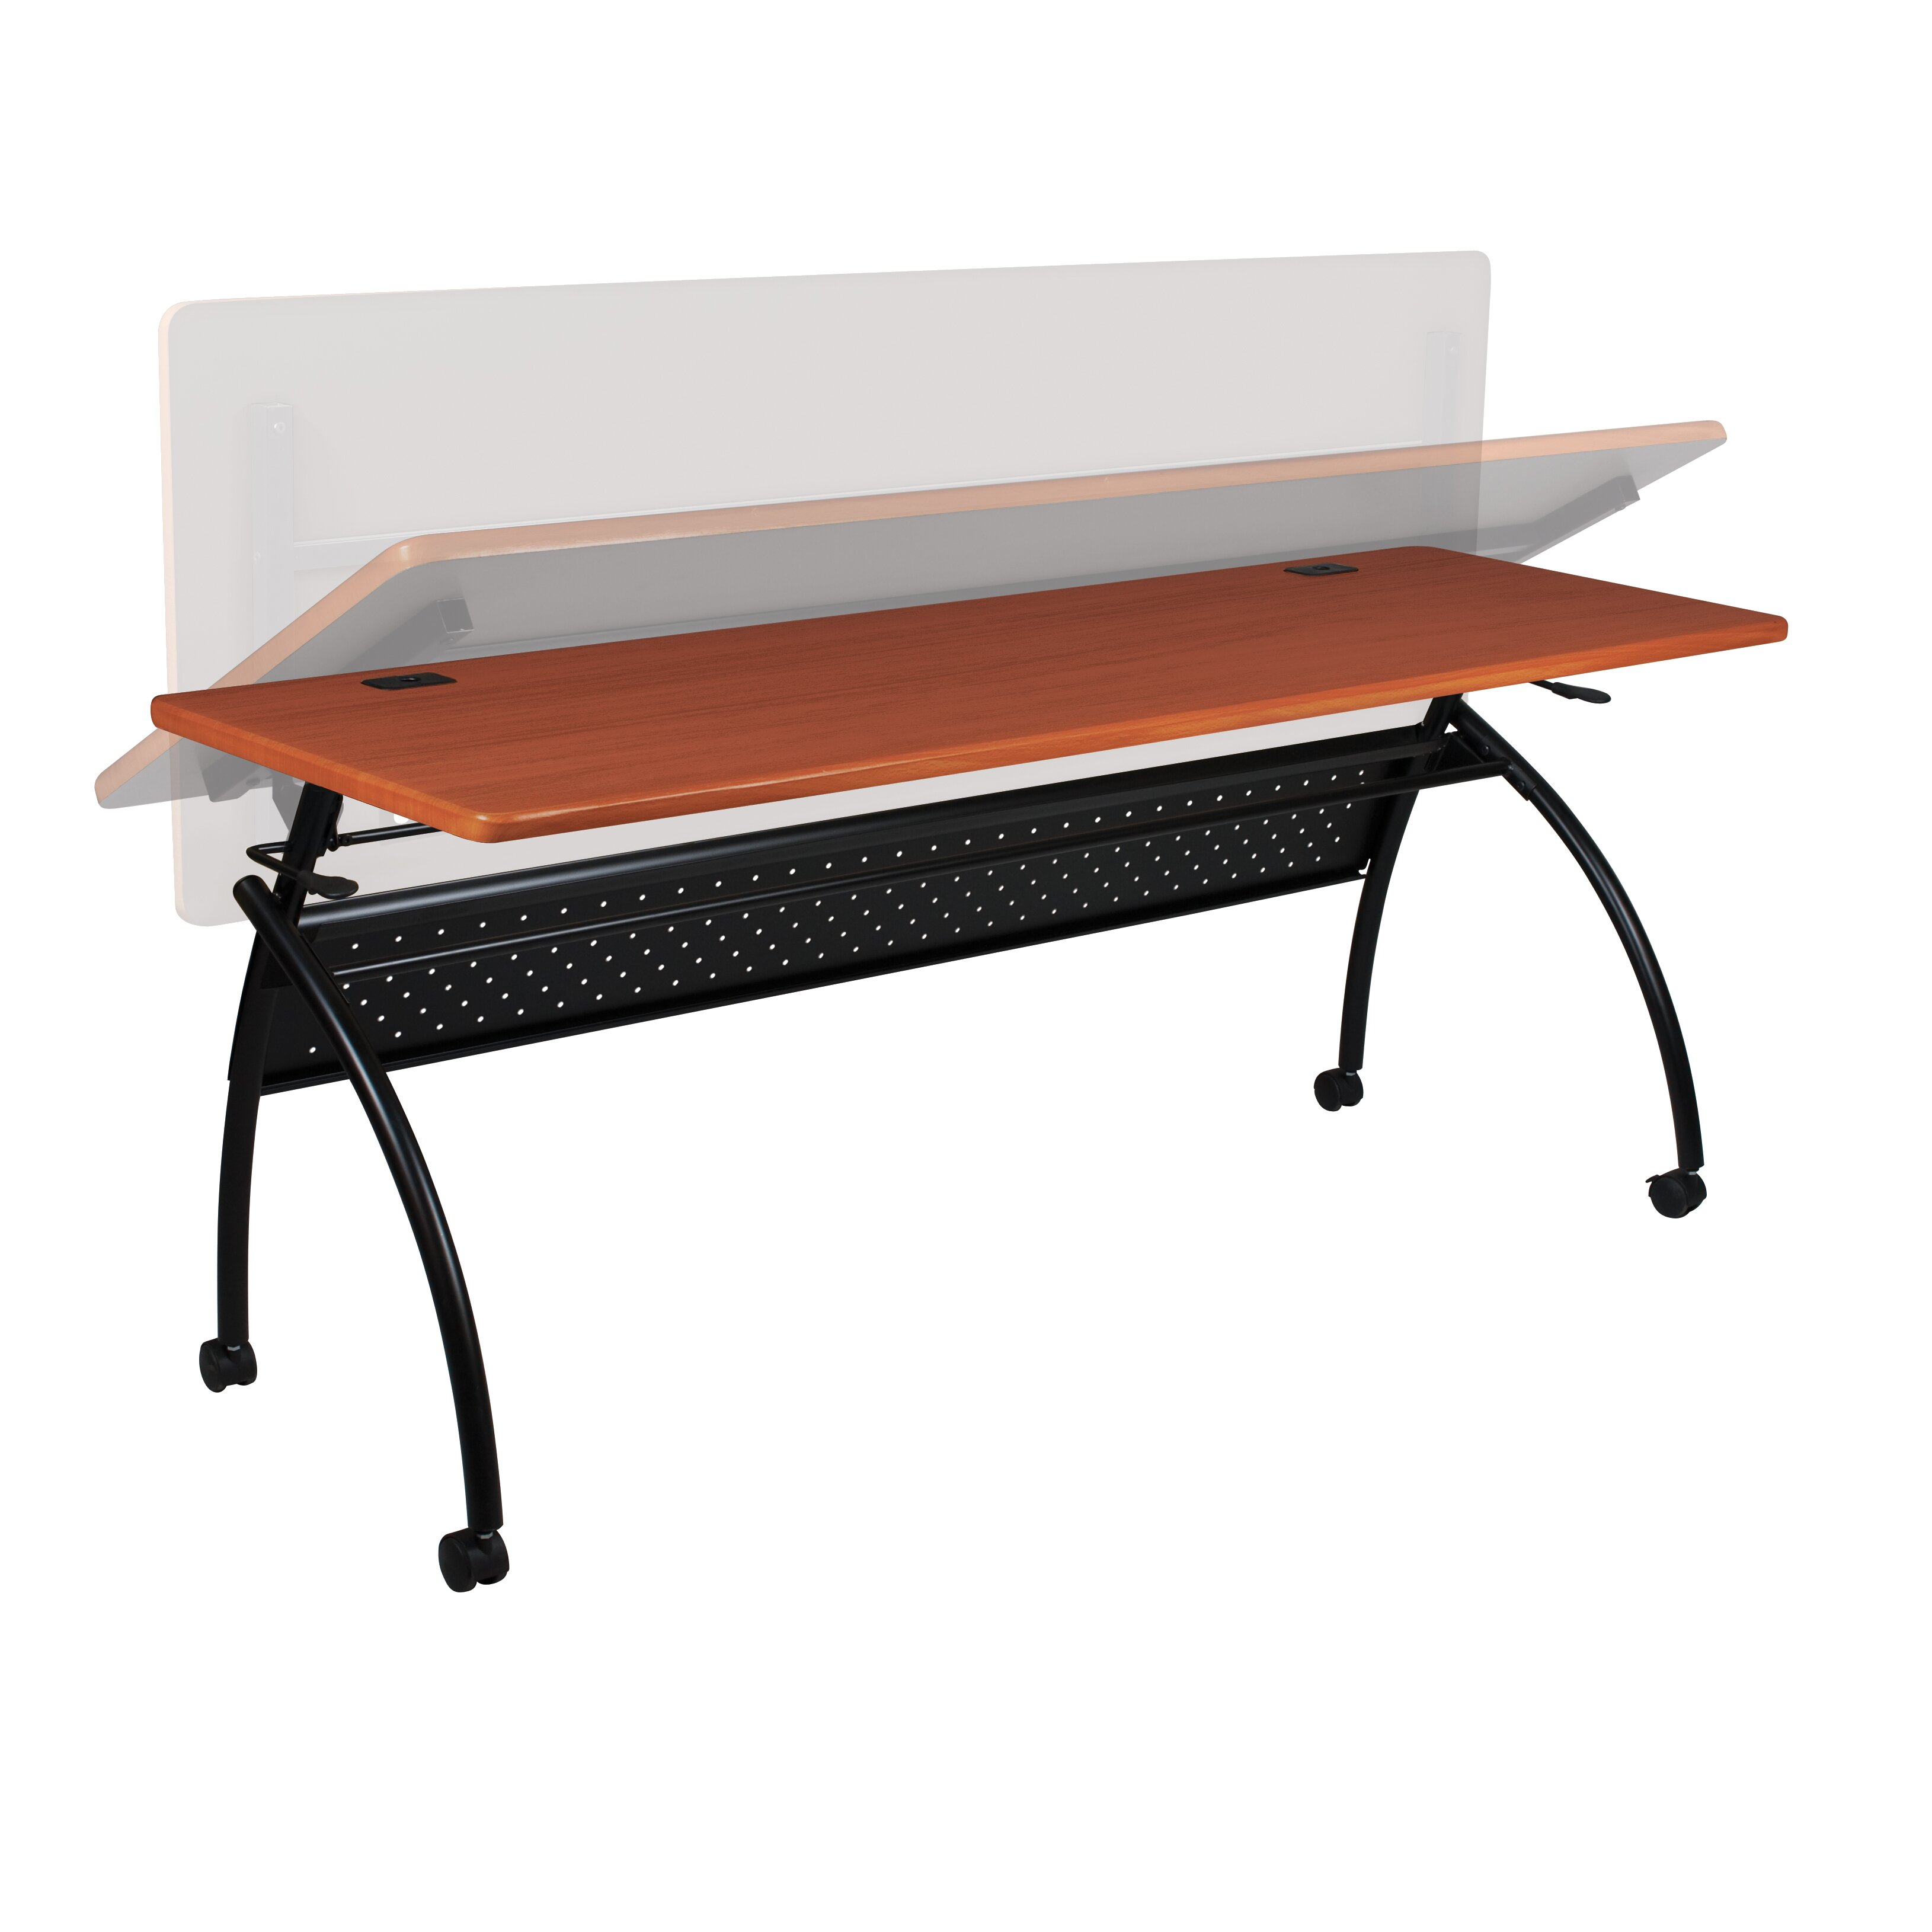 Balt chi flipper training table reviews wayfair supply for Chi square table df 99